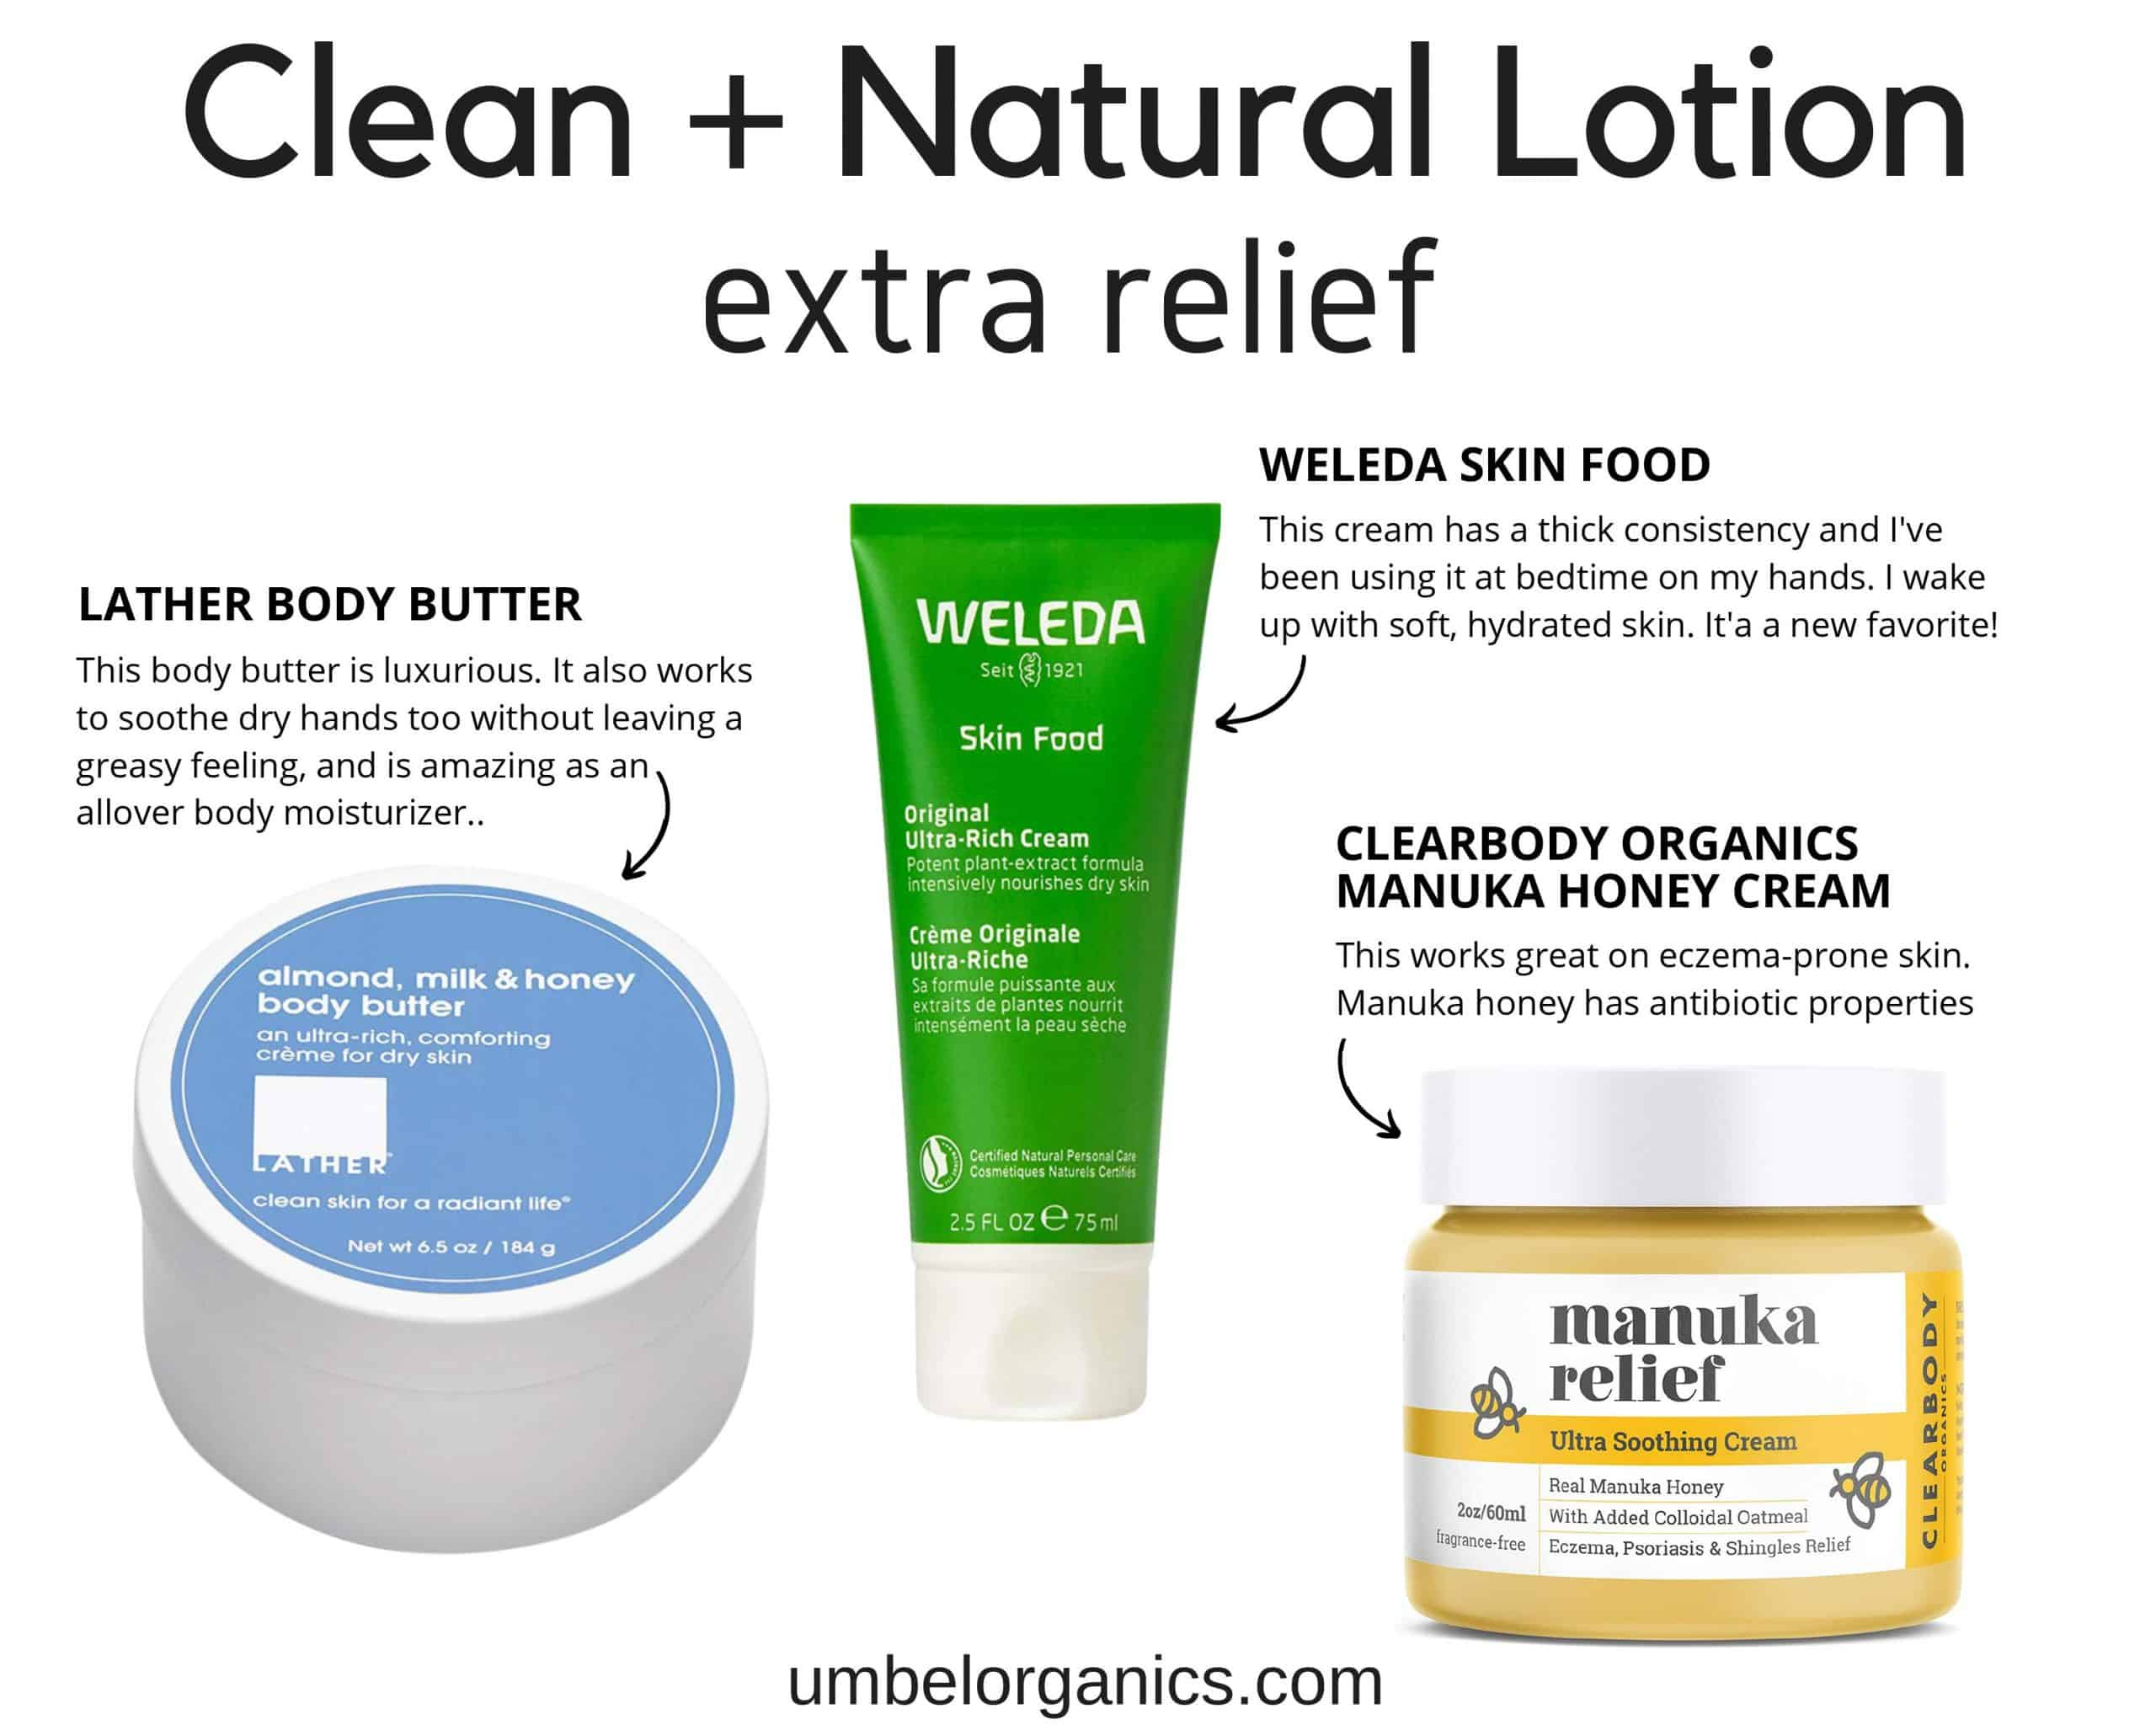 Lather, Weleda, and Clearbody Organics Lotion For Extra Dry Skin